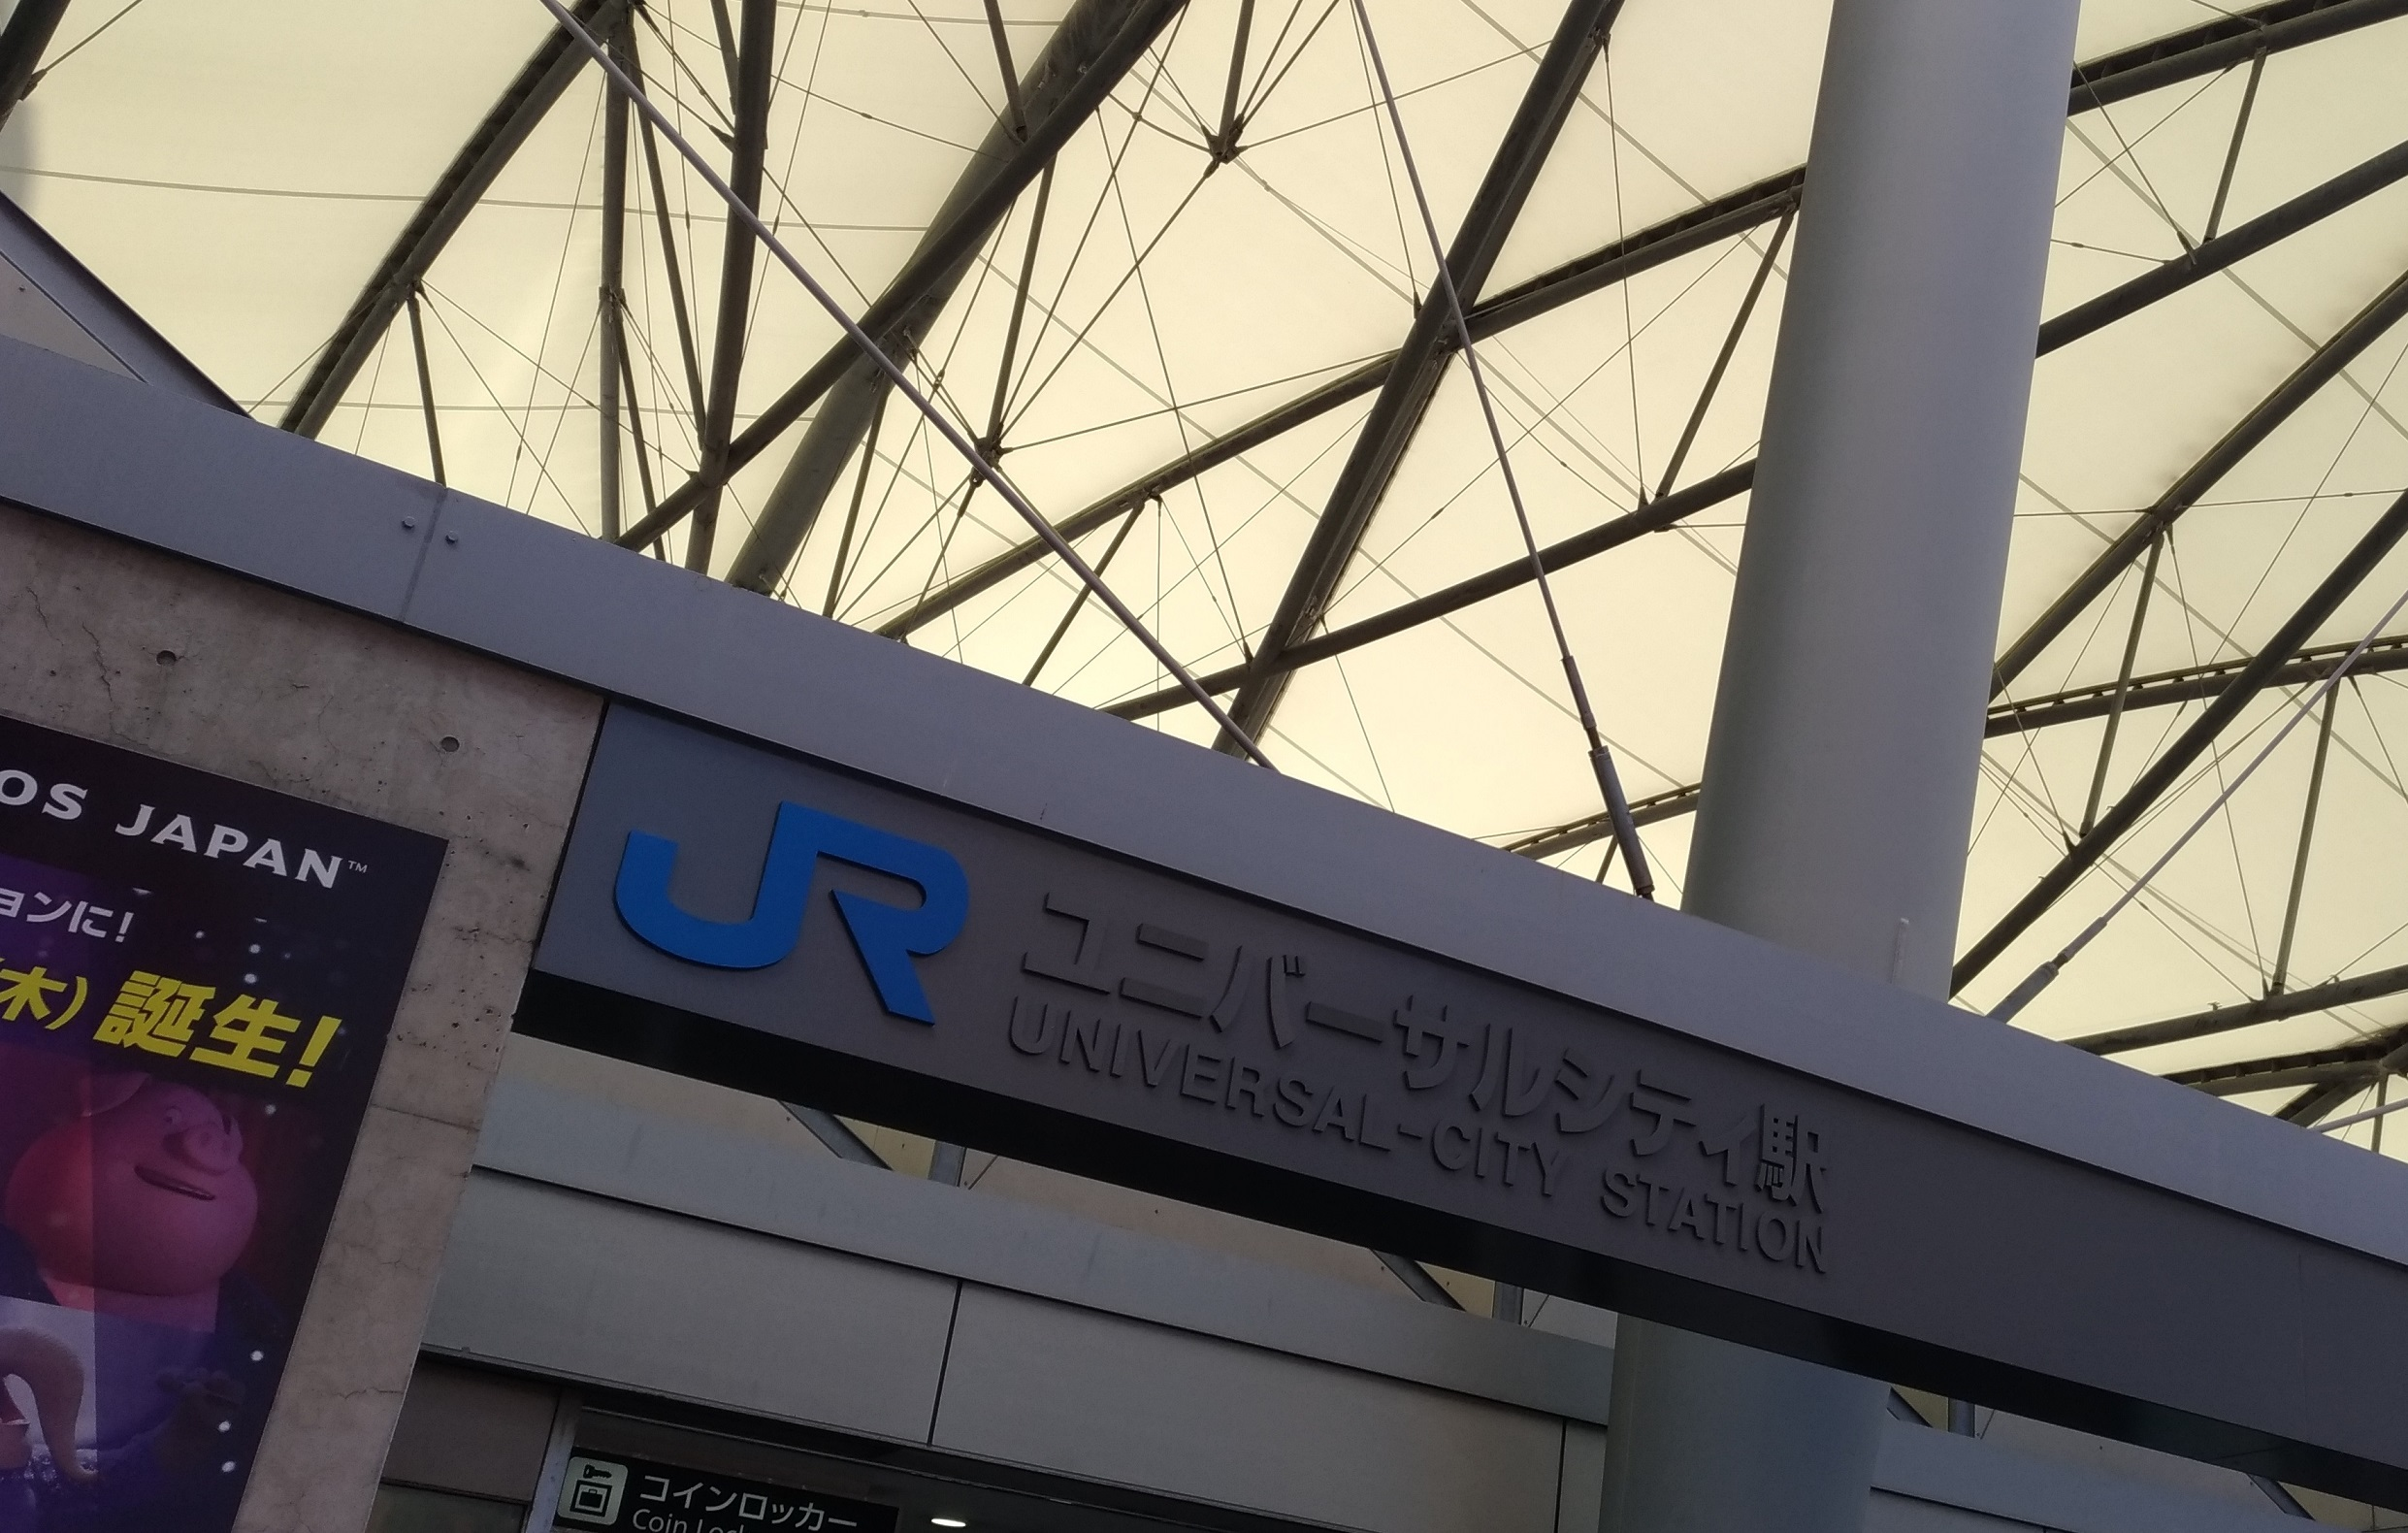 osaka_usj_train_JR_access_5.jpg